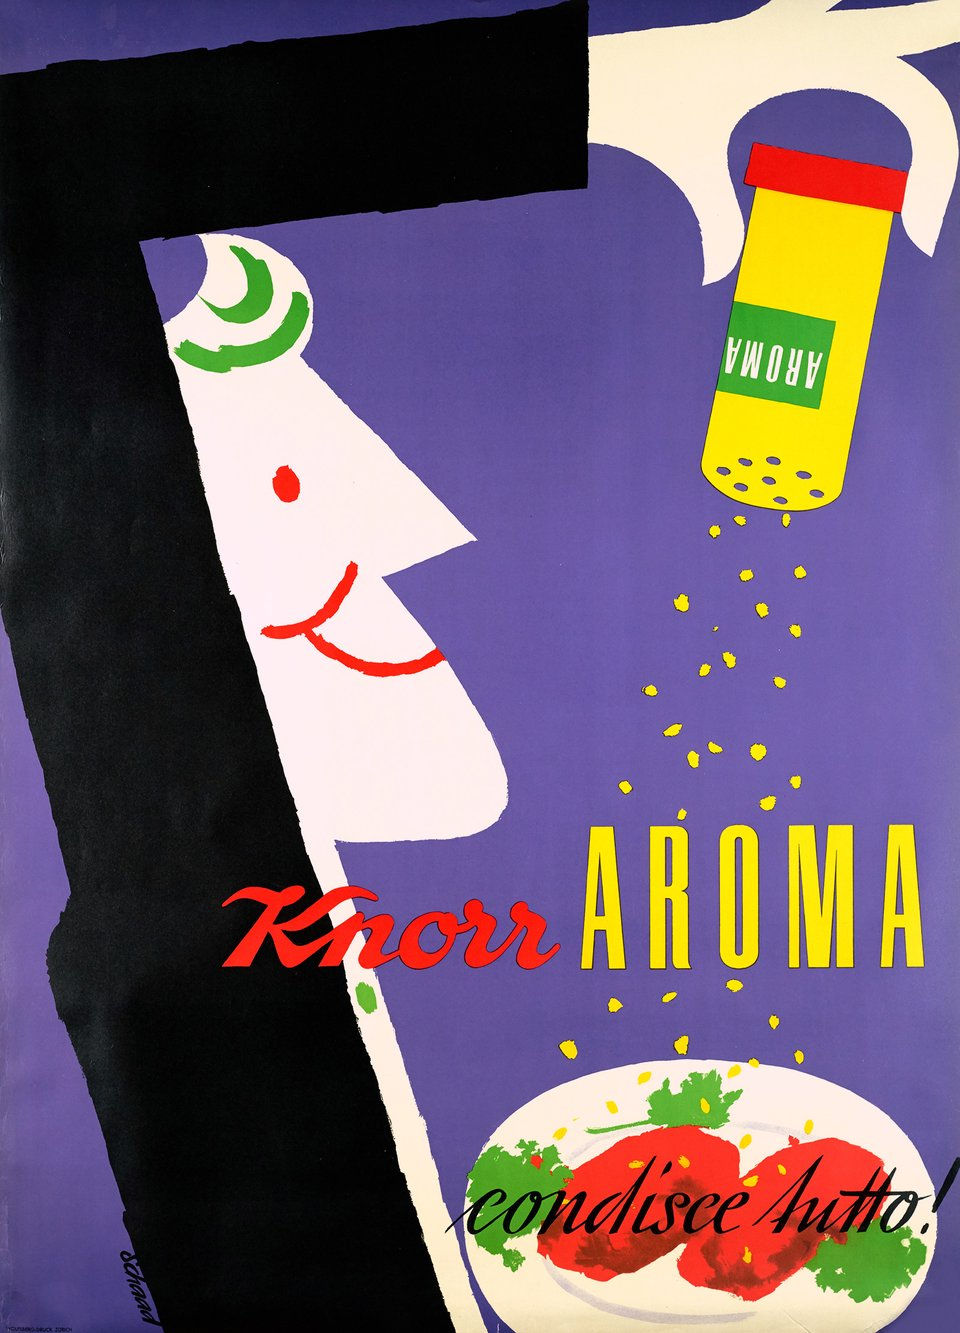 Knorr Aroma – Affiche ancienne – Hans P. SCHAAD – 1955